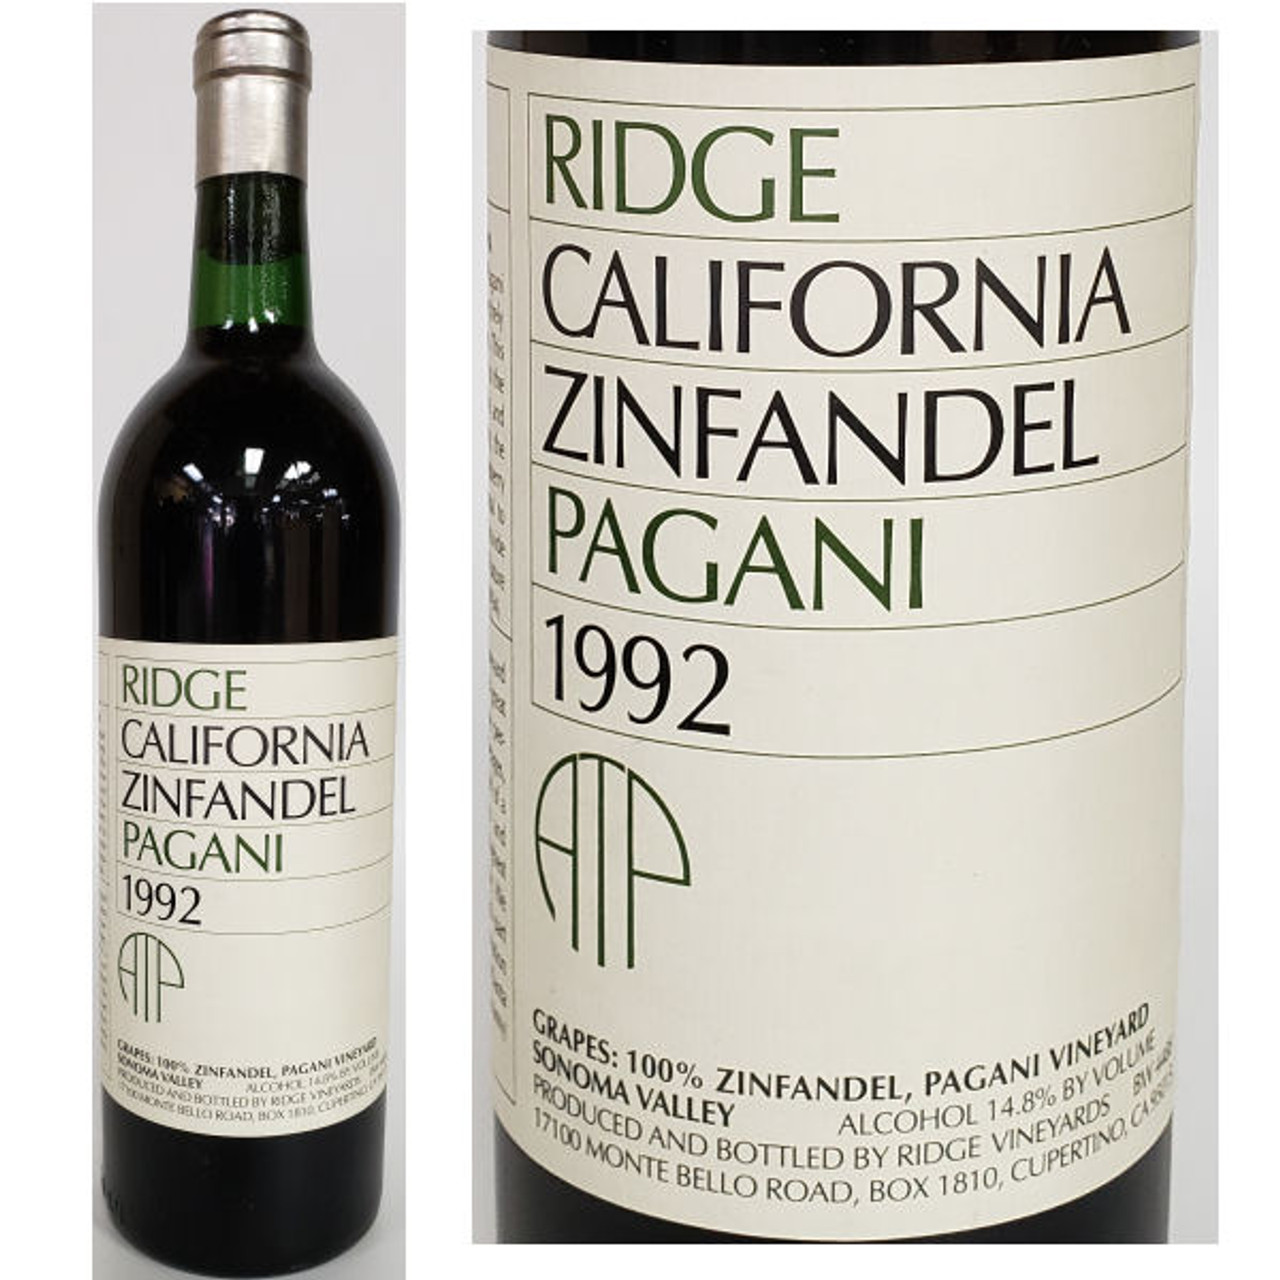 Ridge Pagani Vineyard Sonoma Zinfandel